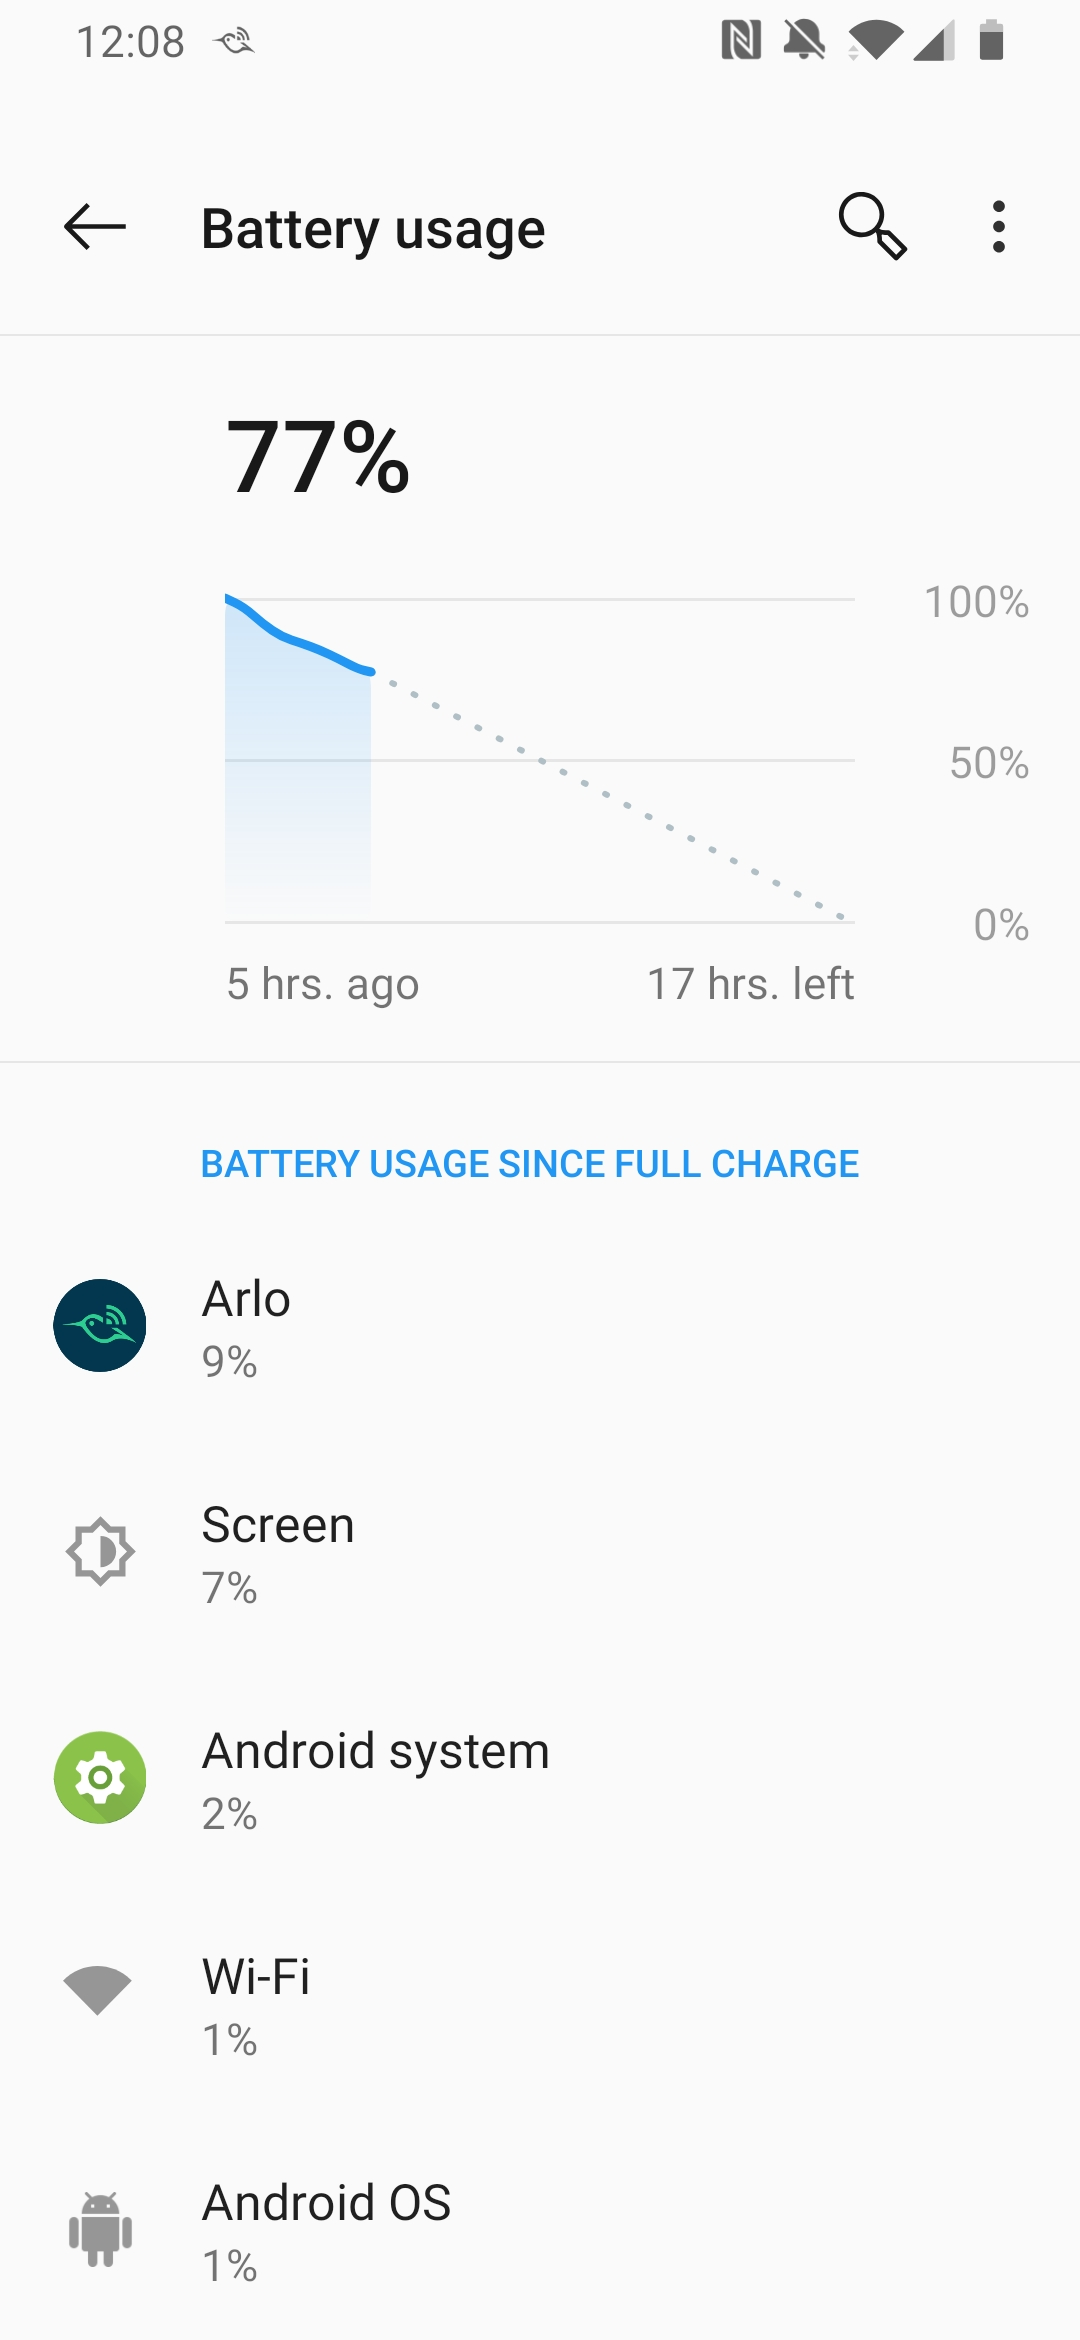 Re: Arlo Android App drains phone battery when in     - Page